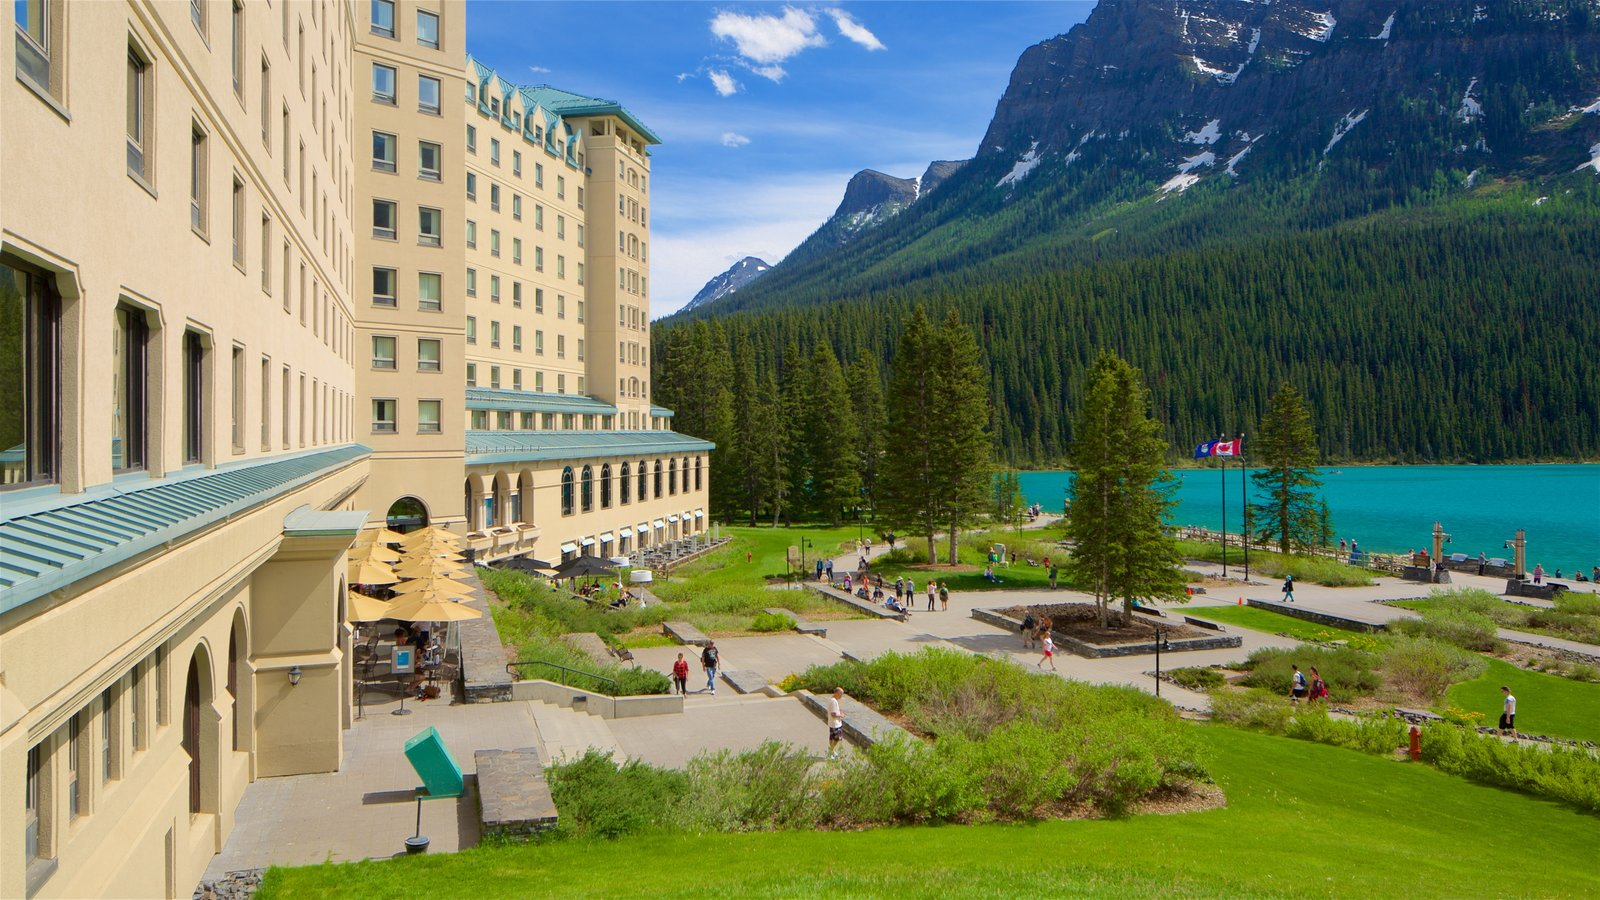 Banff National Park which includes tranquil scenes, a park and a lake or waterhole